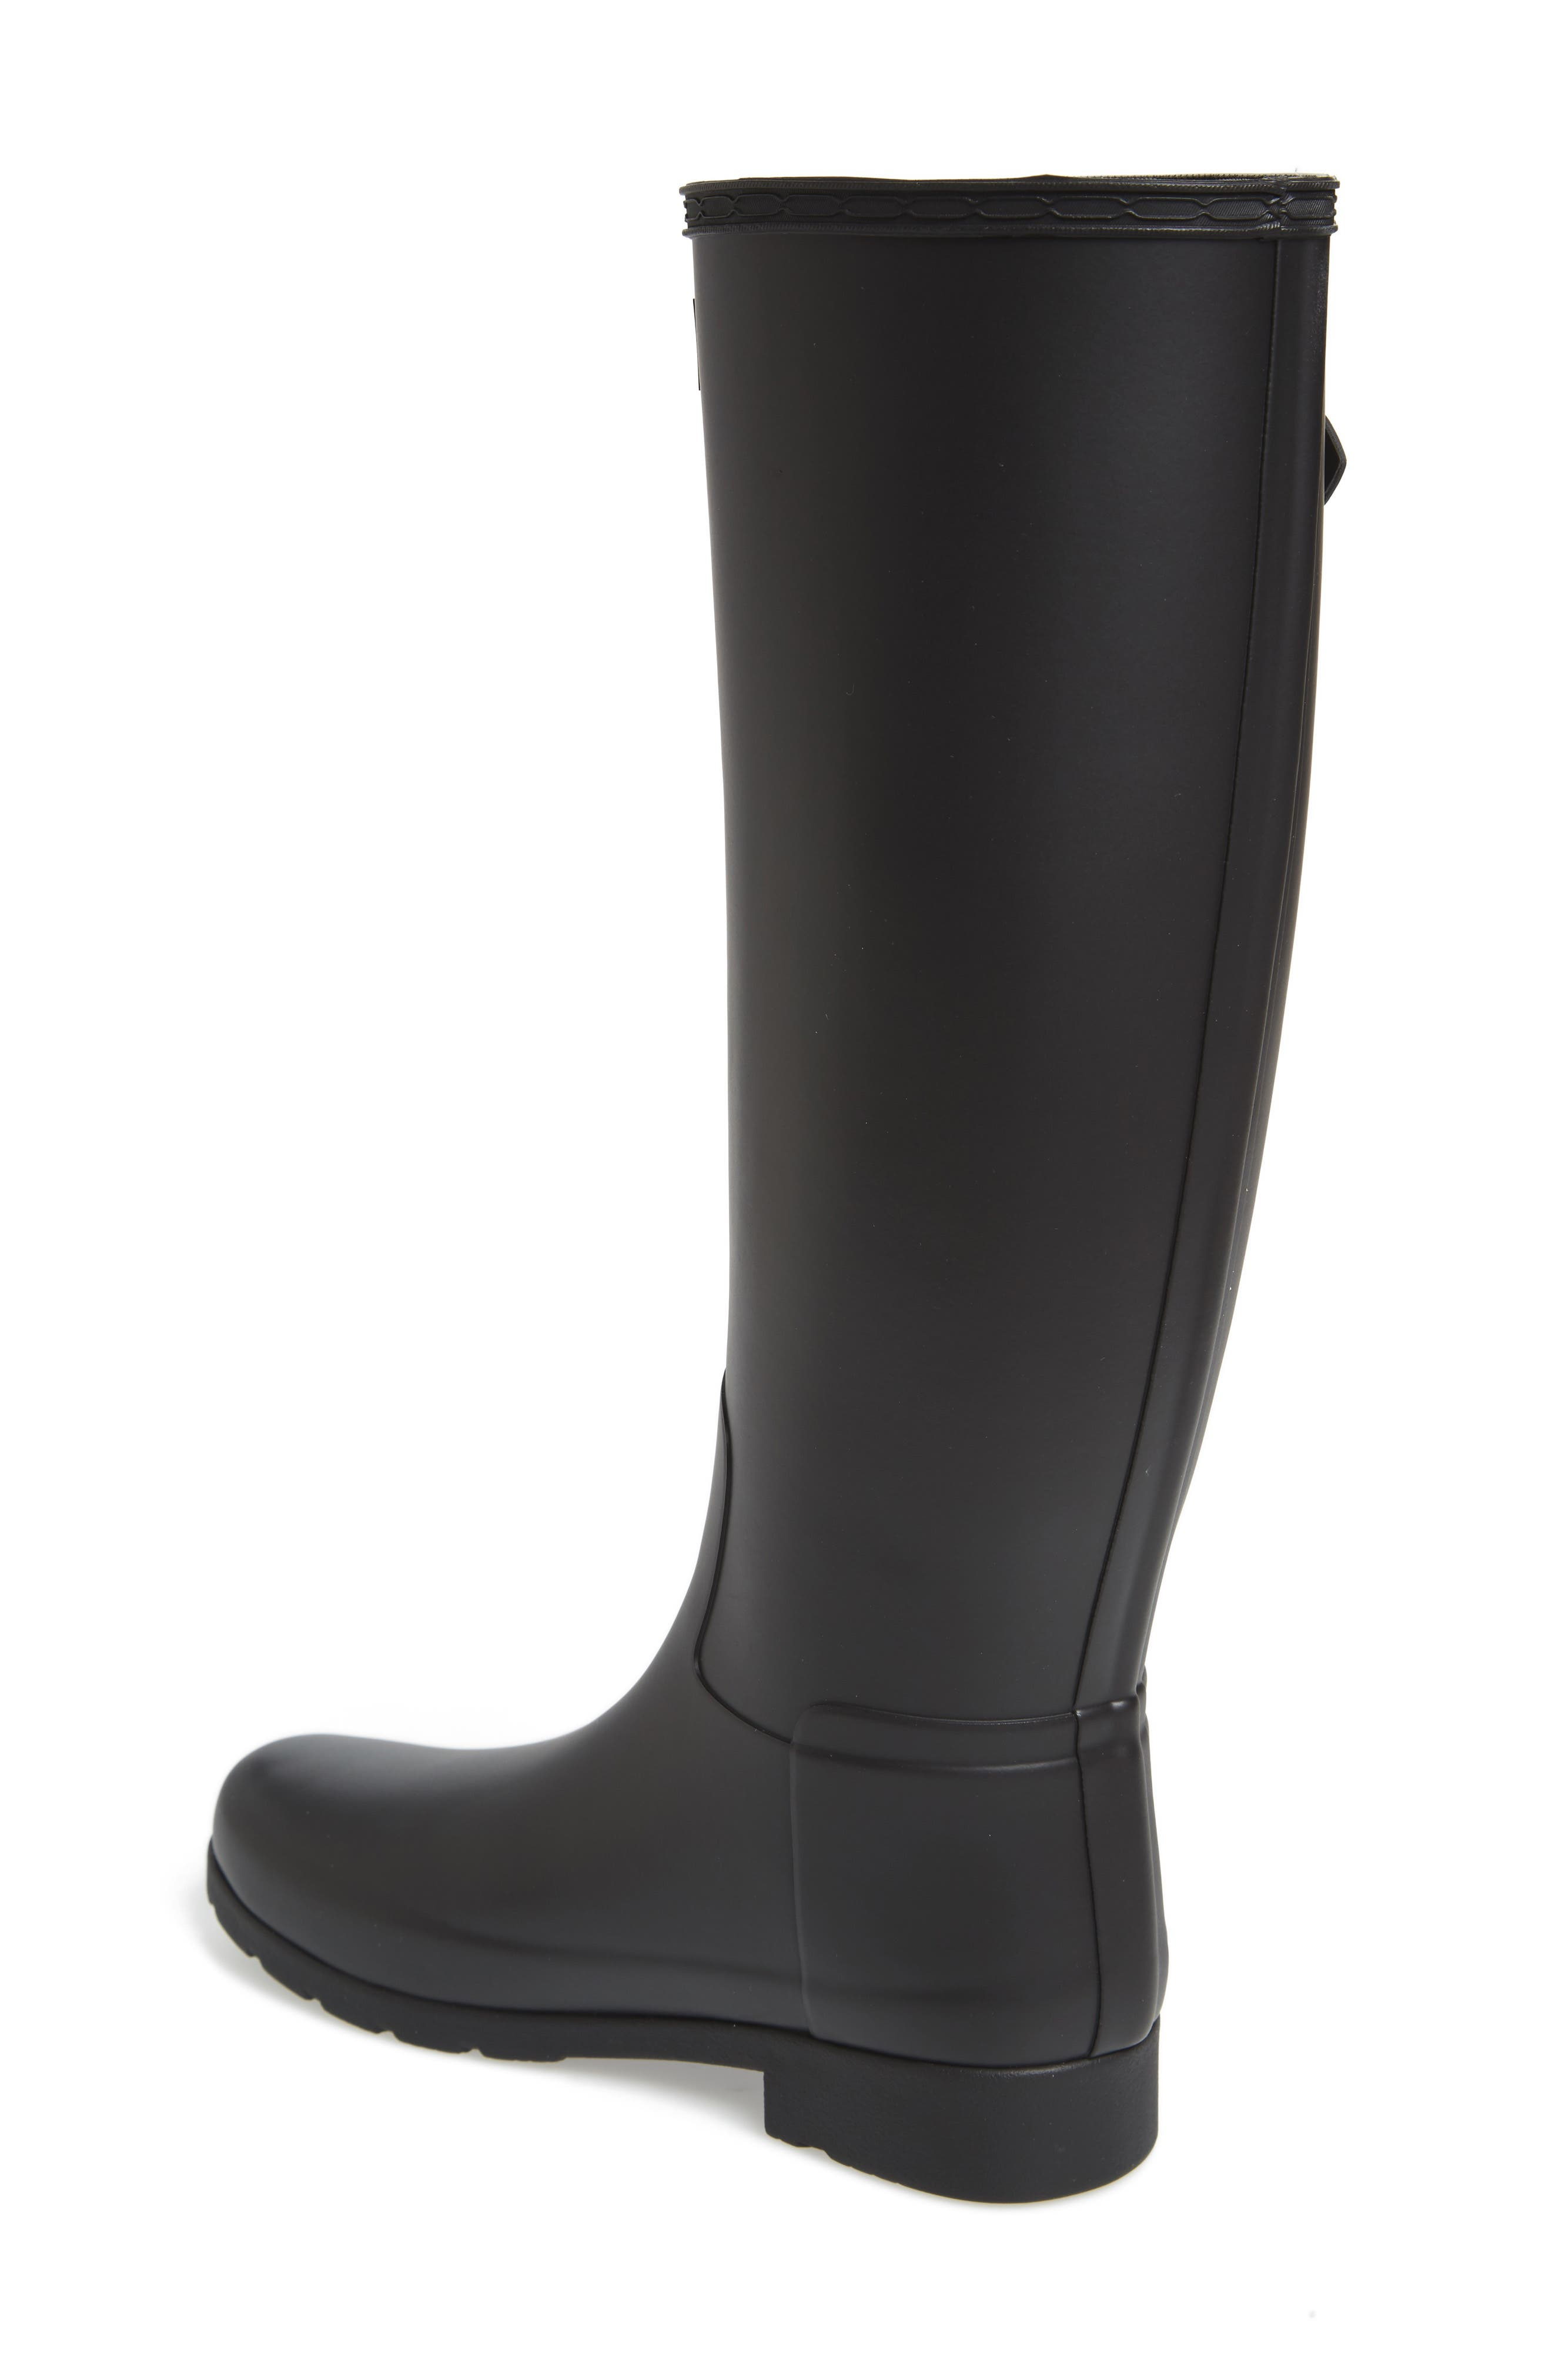 Original Refined Rain Boot,                             Alternate thumbnail 2, color,                             BLACK